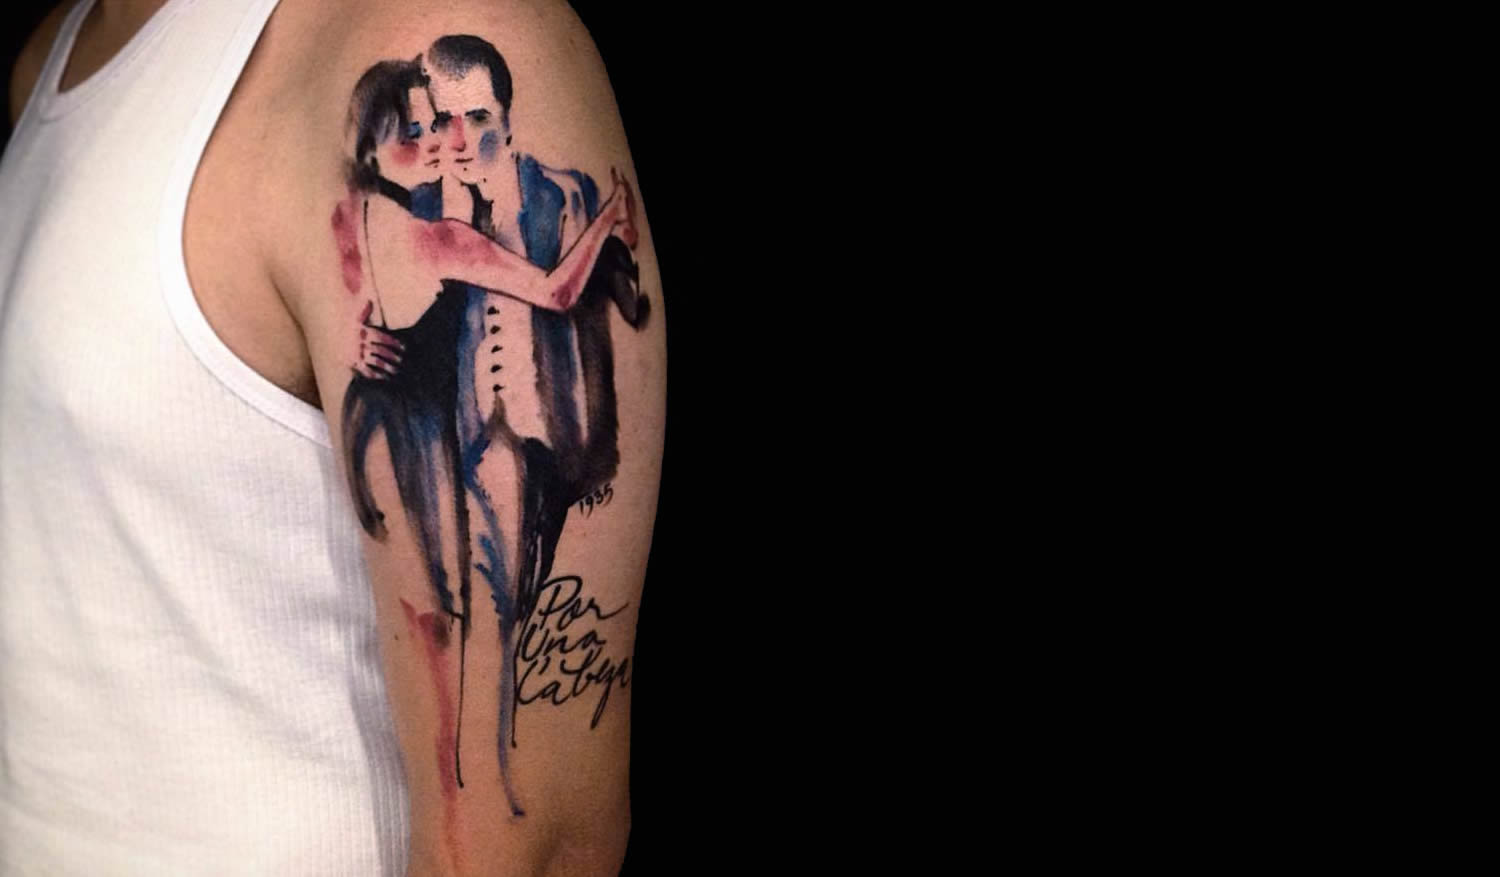 Scent of a woman tattoo by victor montaghini